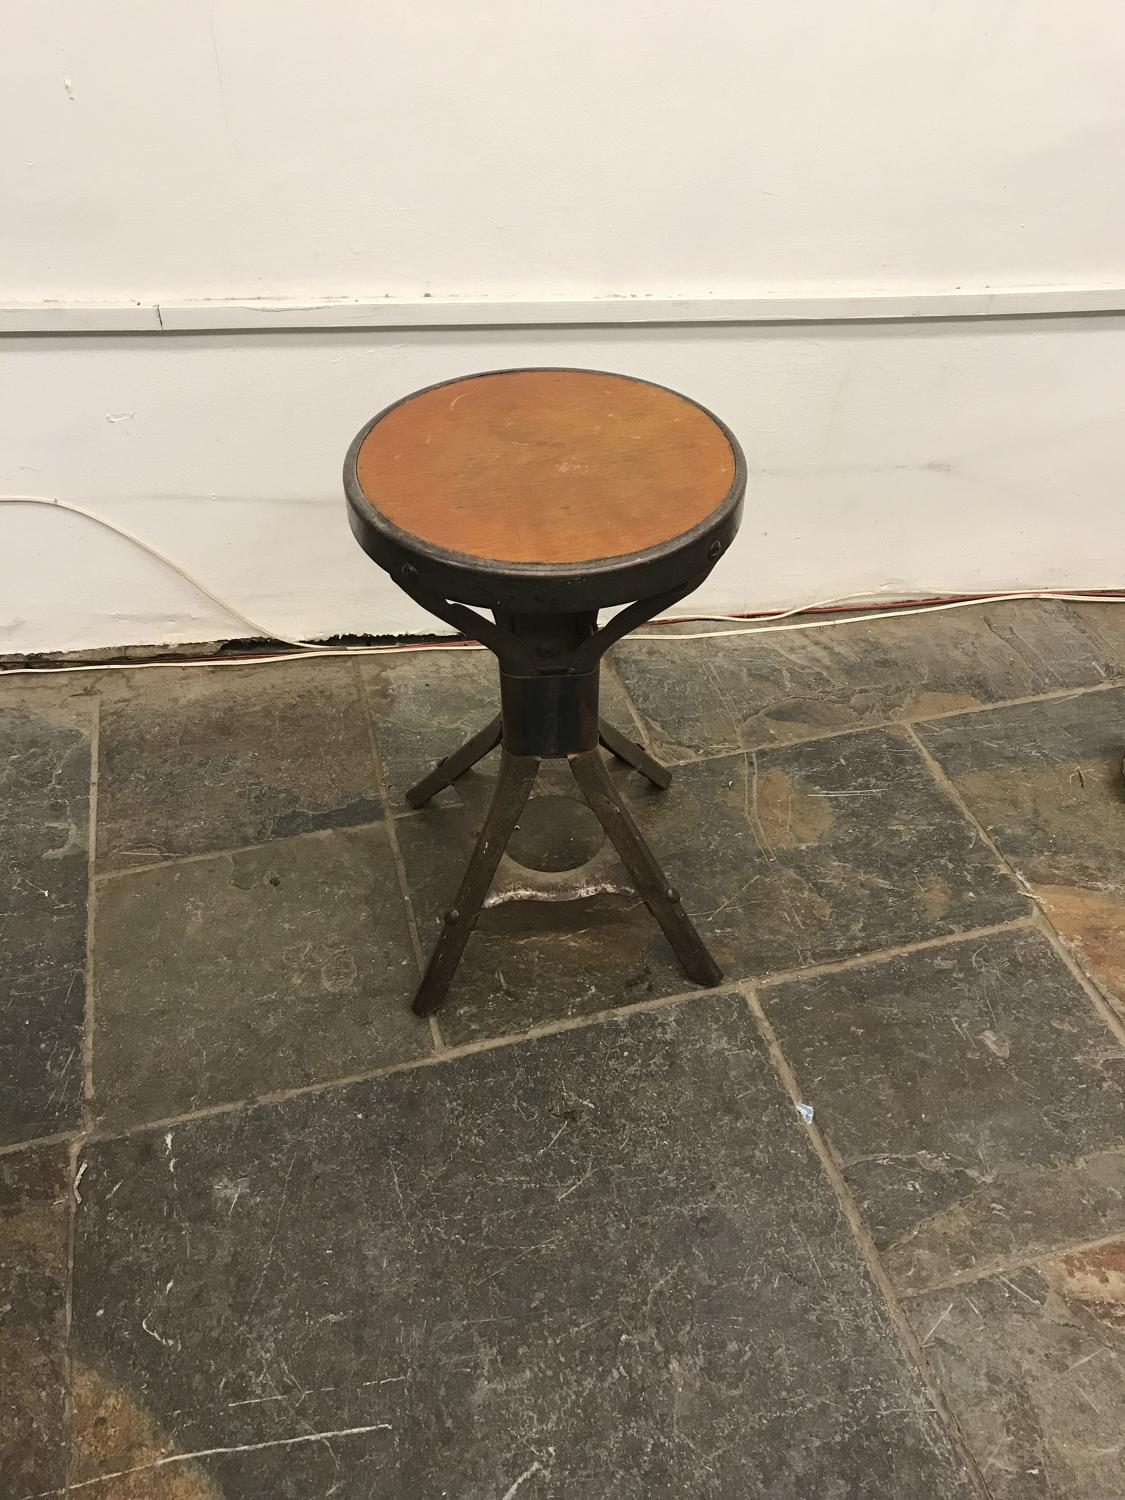 1930s industrial metal and wooden stool